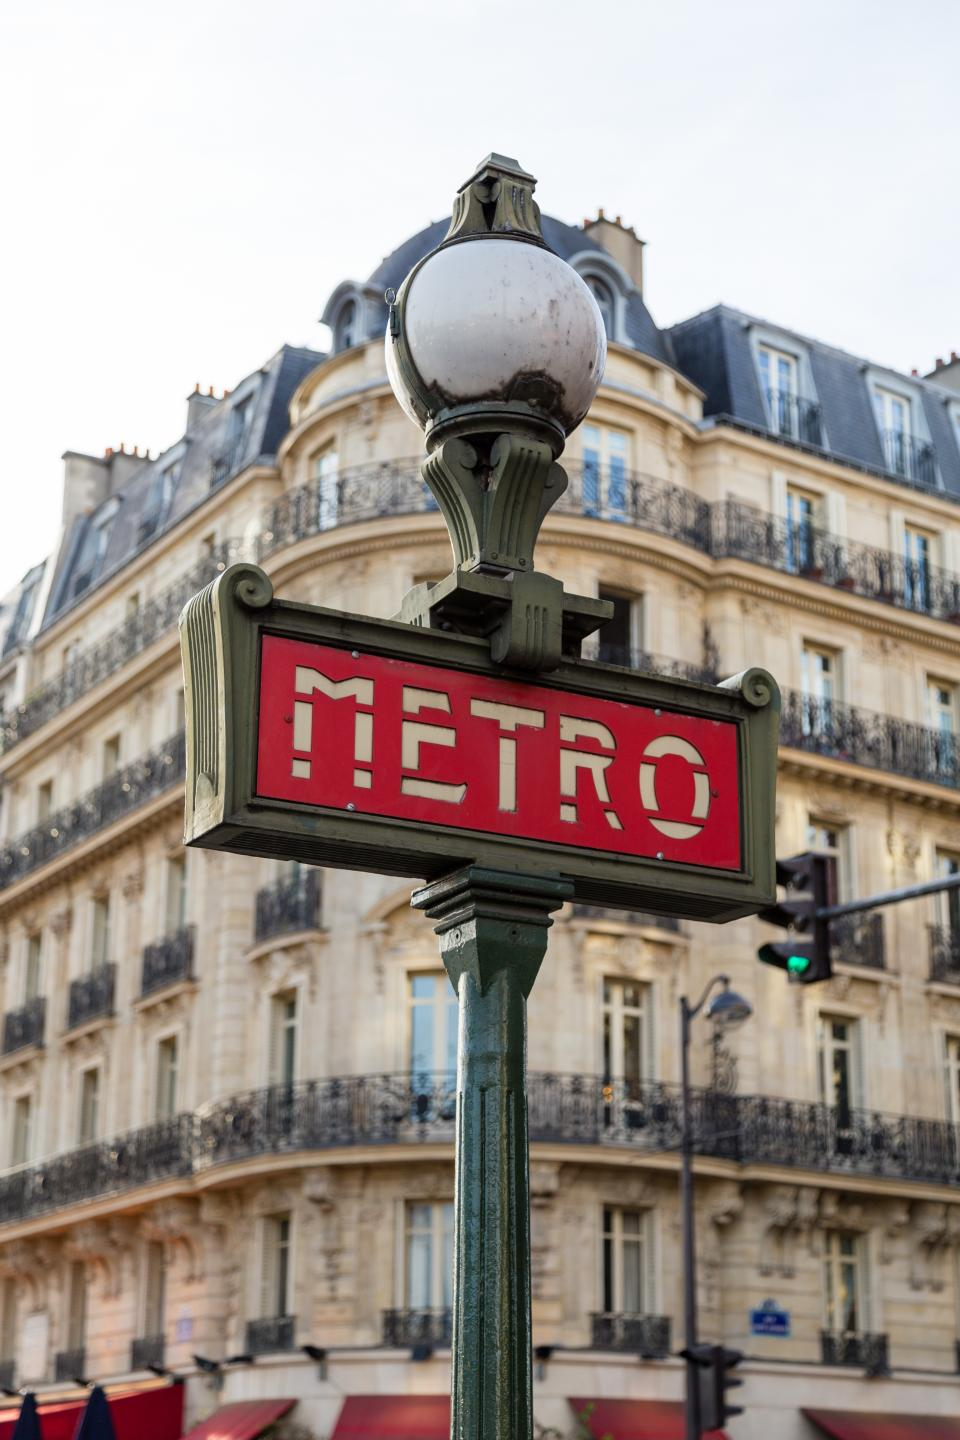 architecture buildings infrastructure pole sign city paris metro lamp street